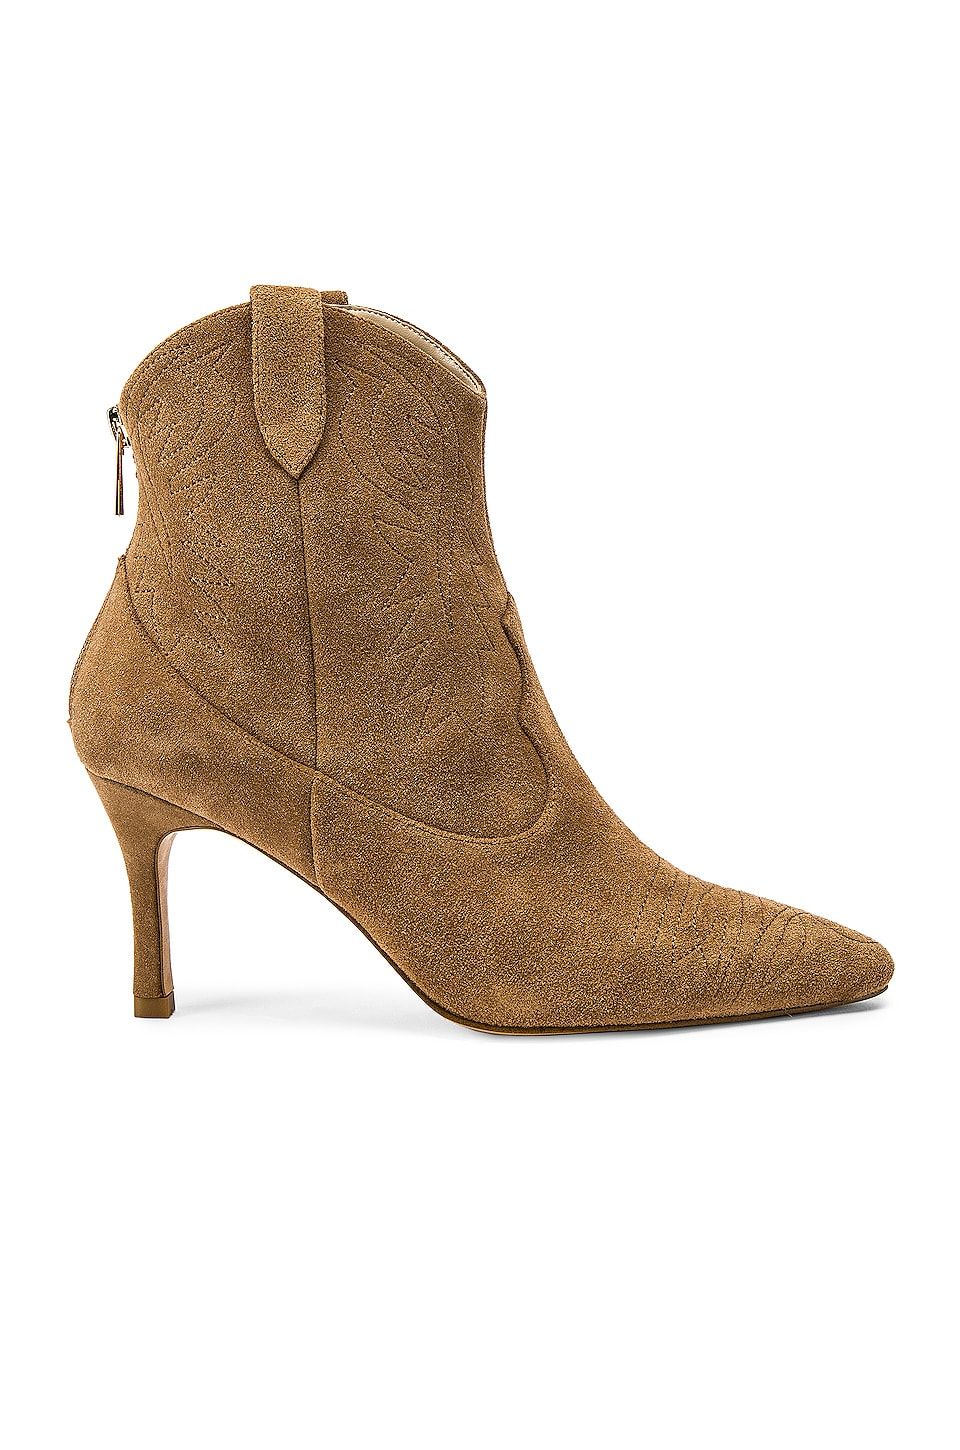 RAYE Sequoia Bootie in Tan